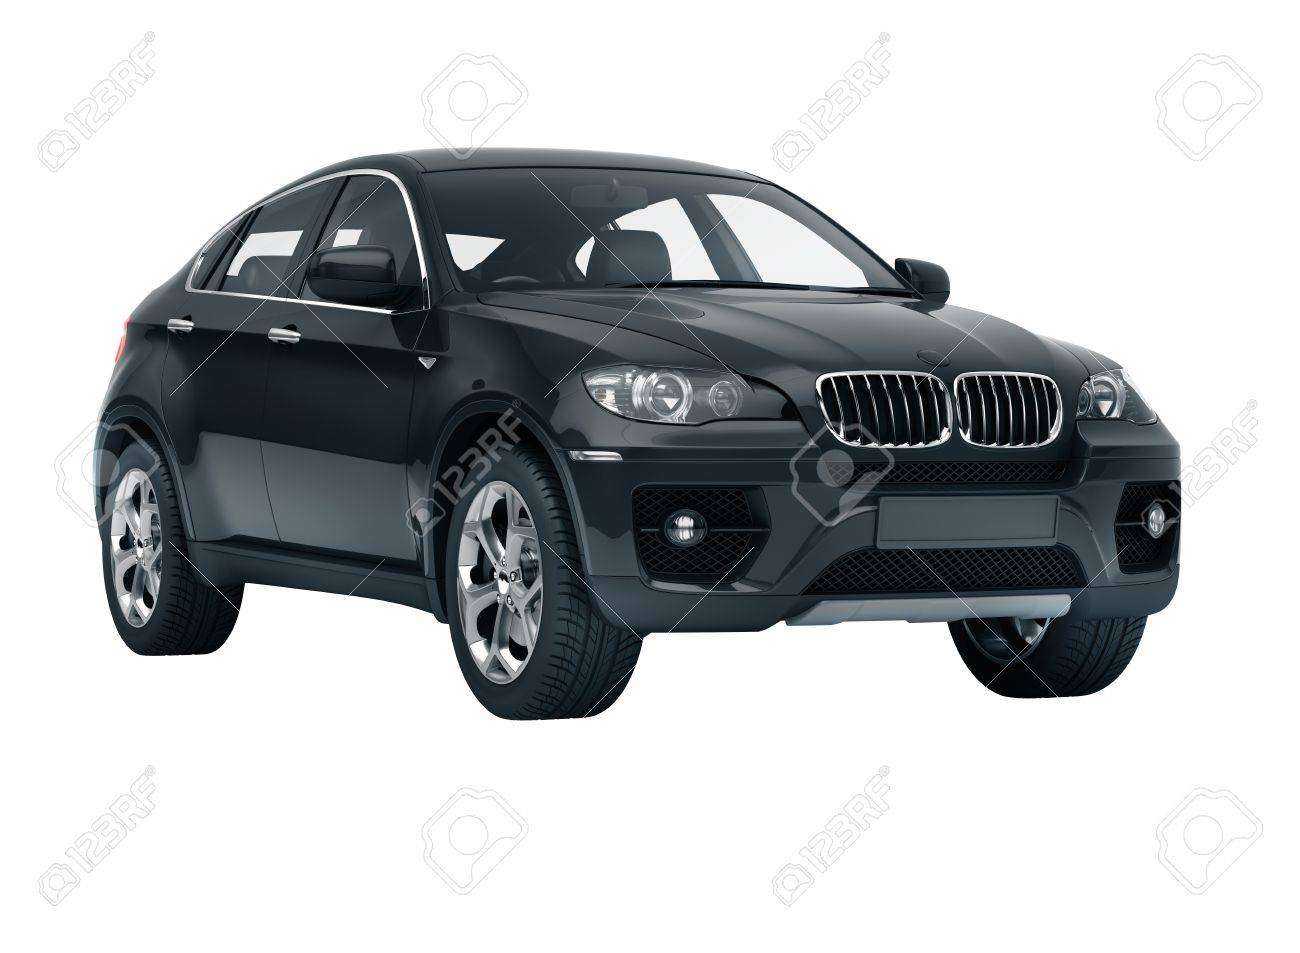 Luxury car in the studio on a light background - 20561234